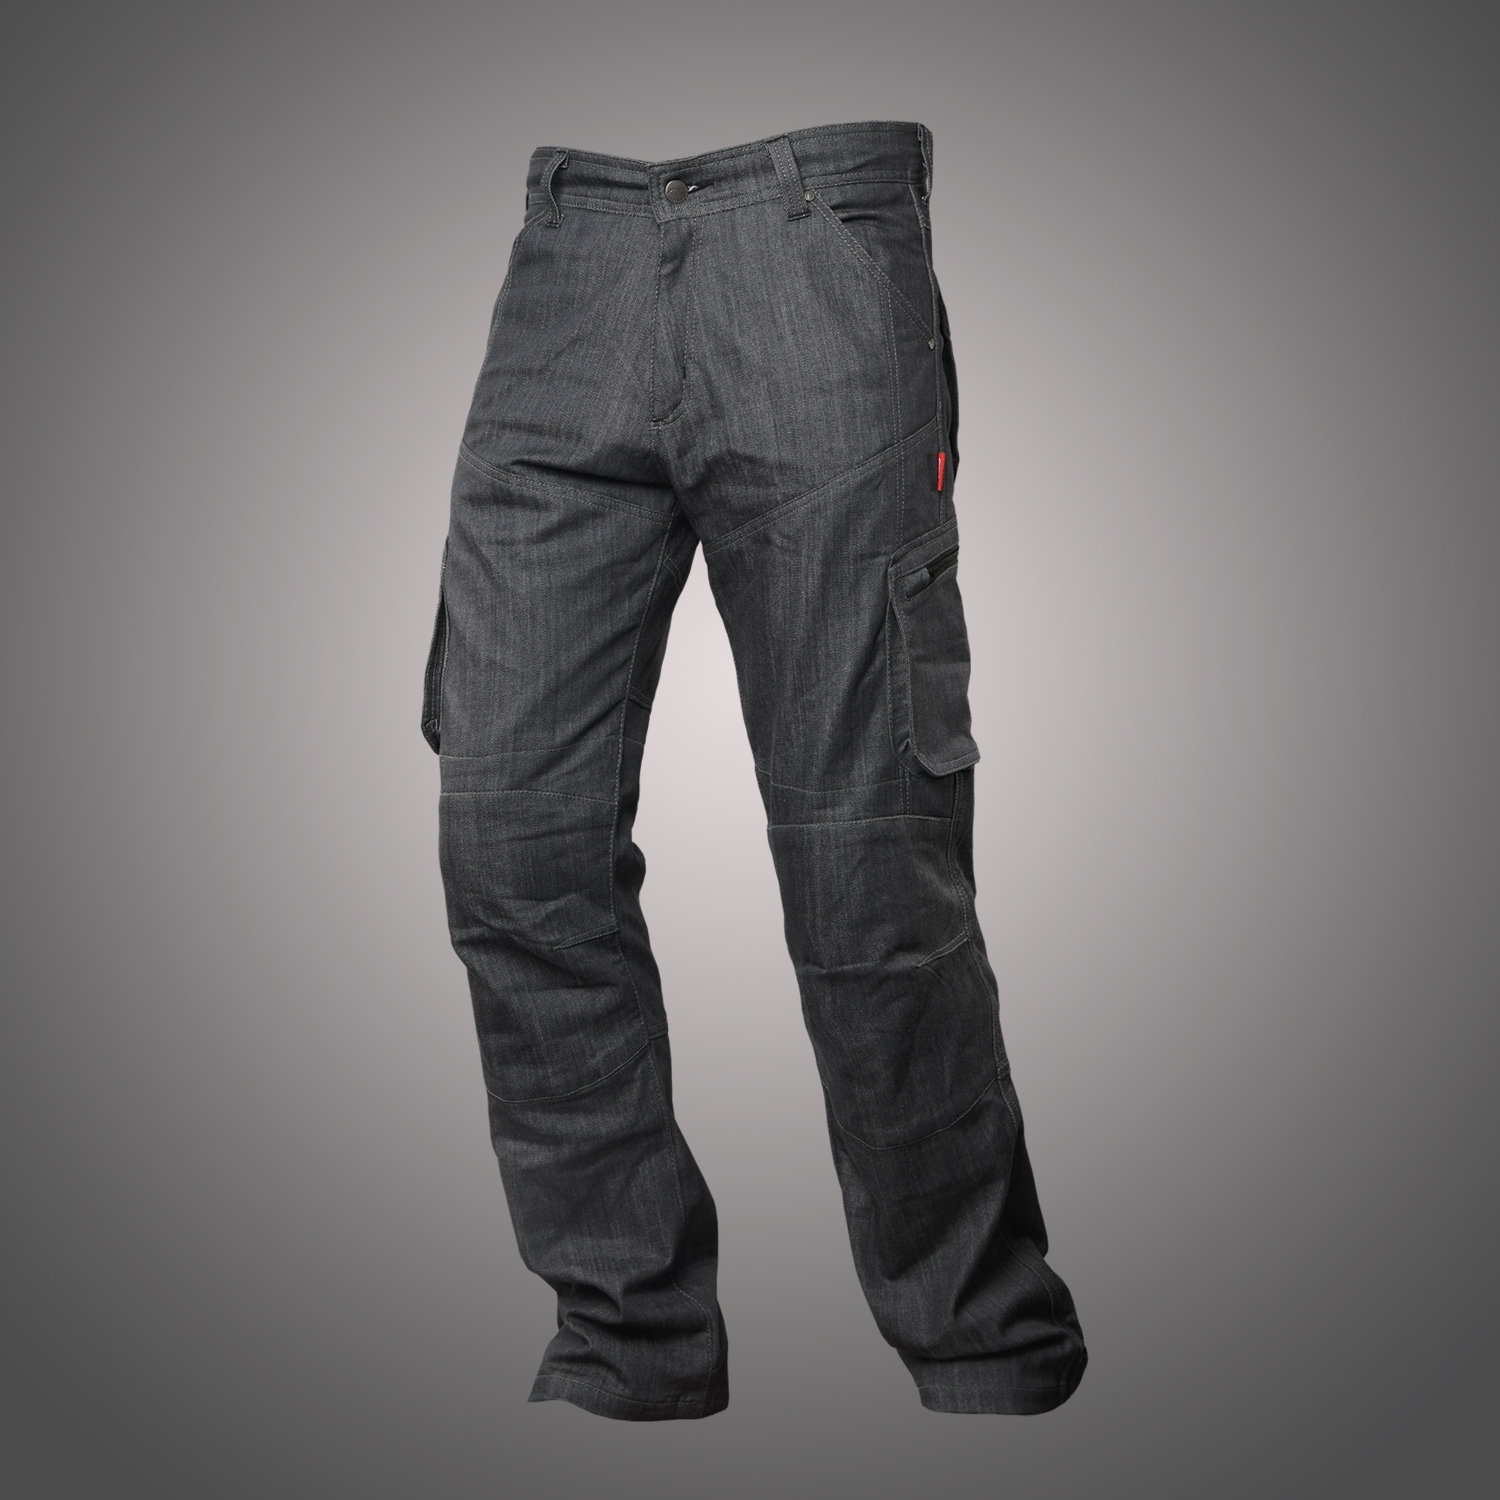 4SR Rifle Cargo Jeans